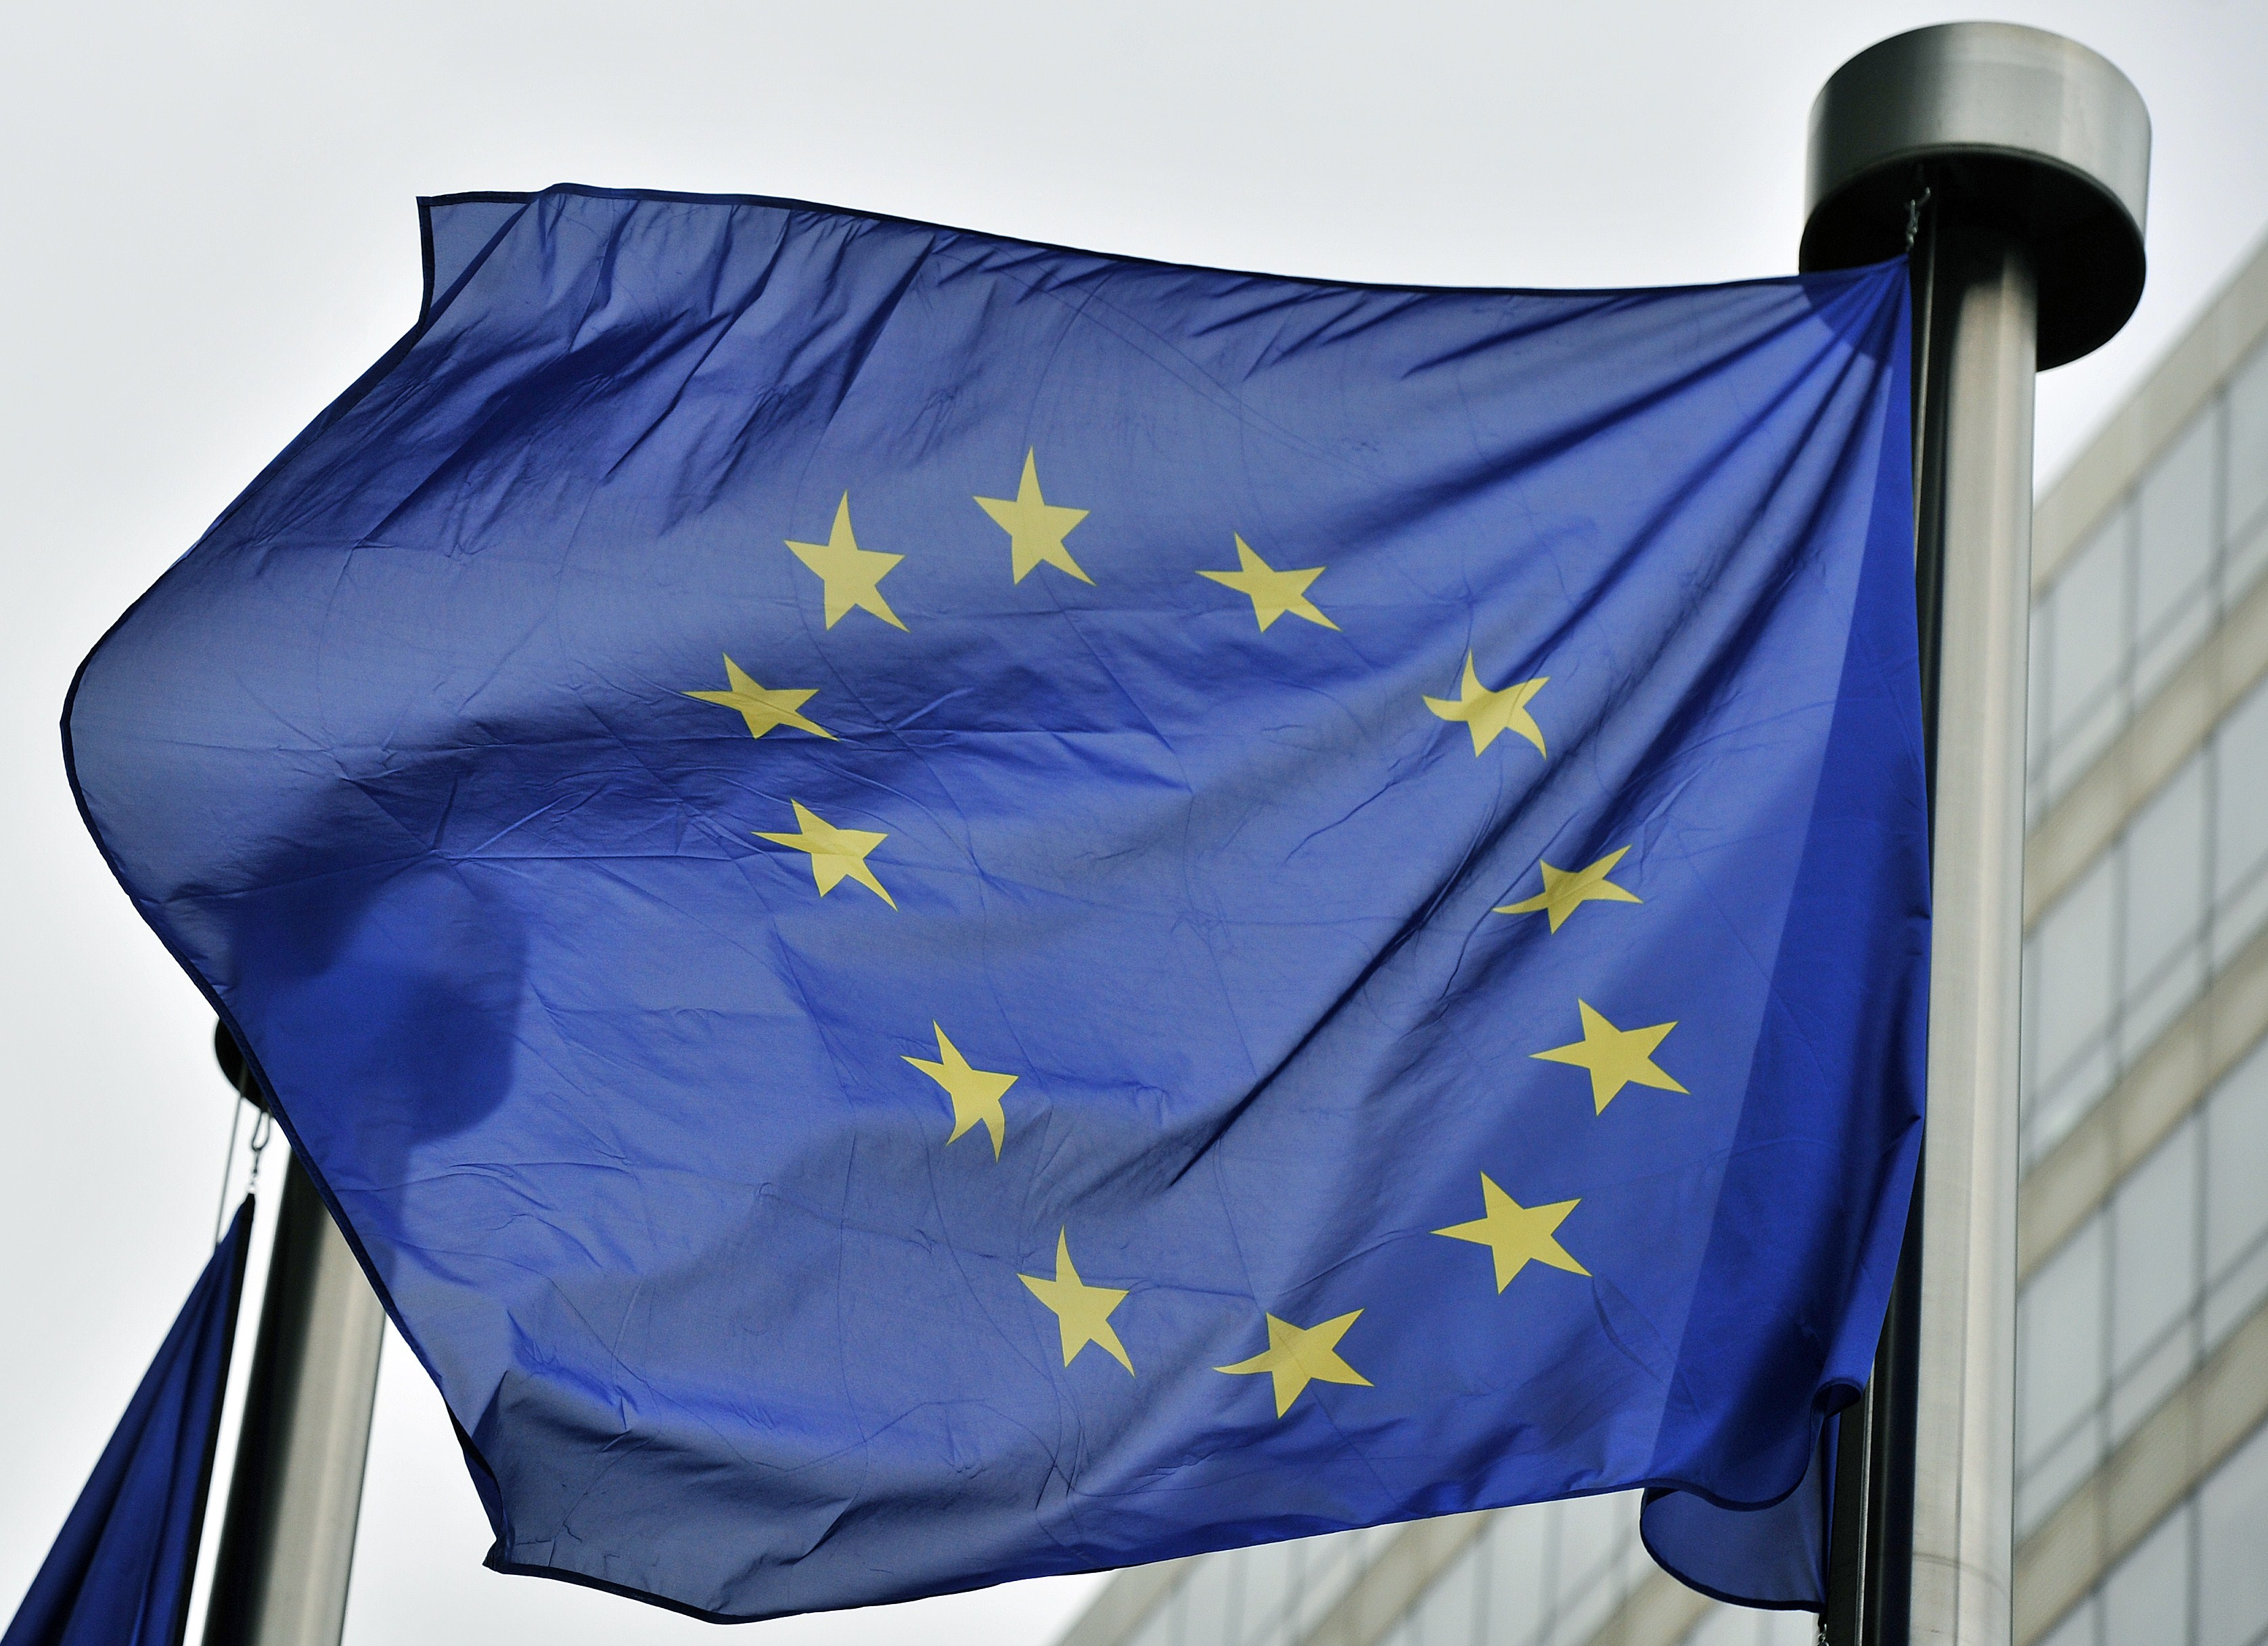 A European flag flies at the entrance of the EU Commission in Brussels on May 21,2014. (Georges Gobet/AFP/Getty Images)